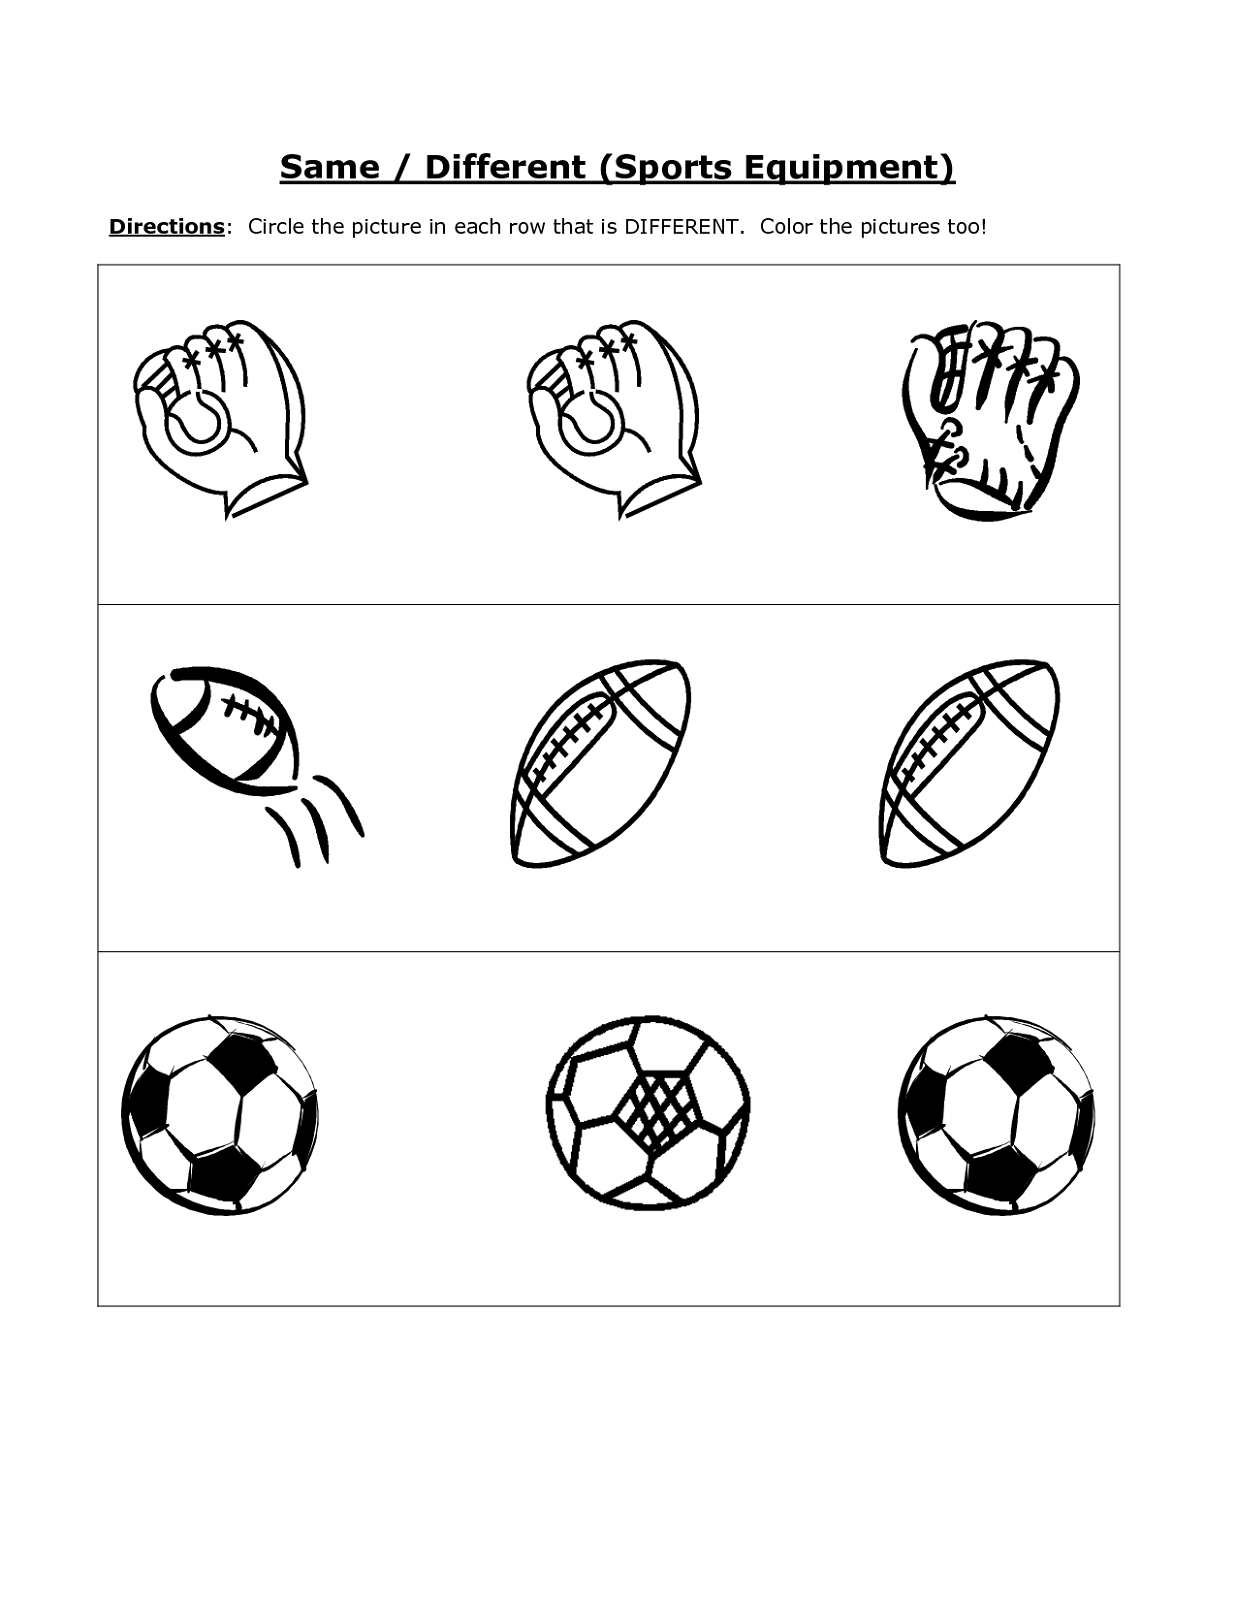 worksheet Same Different Worksheets same and different worksheets for kids activity shelter printable pinterest activities